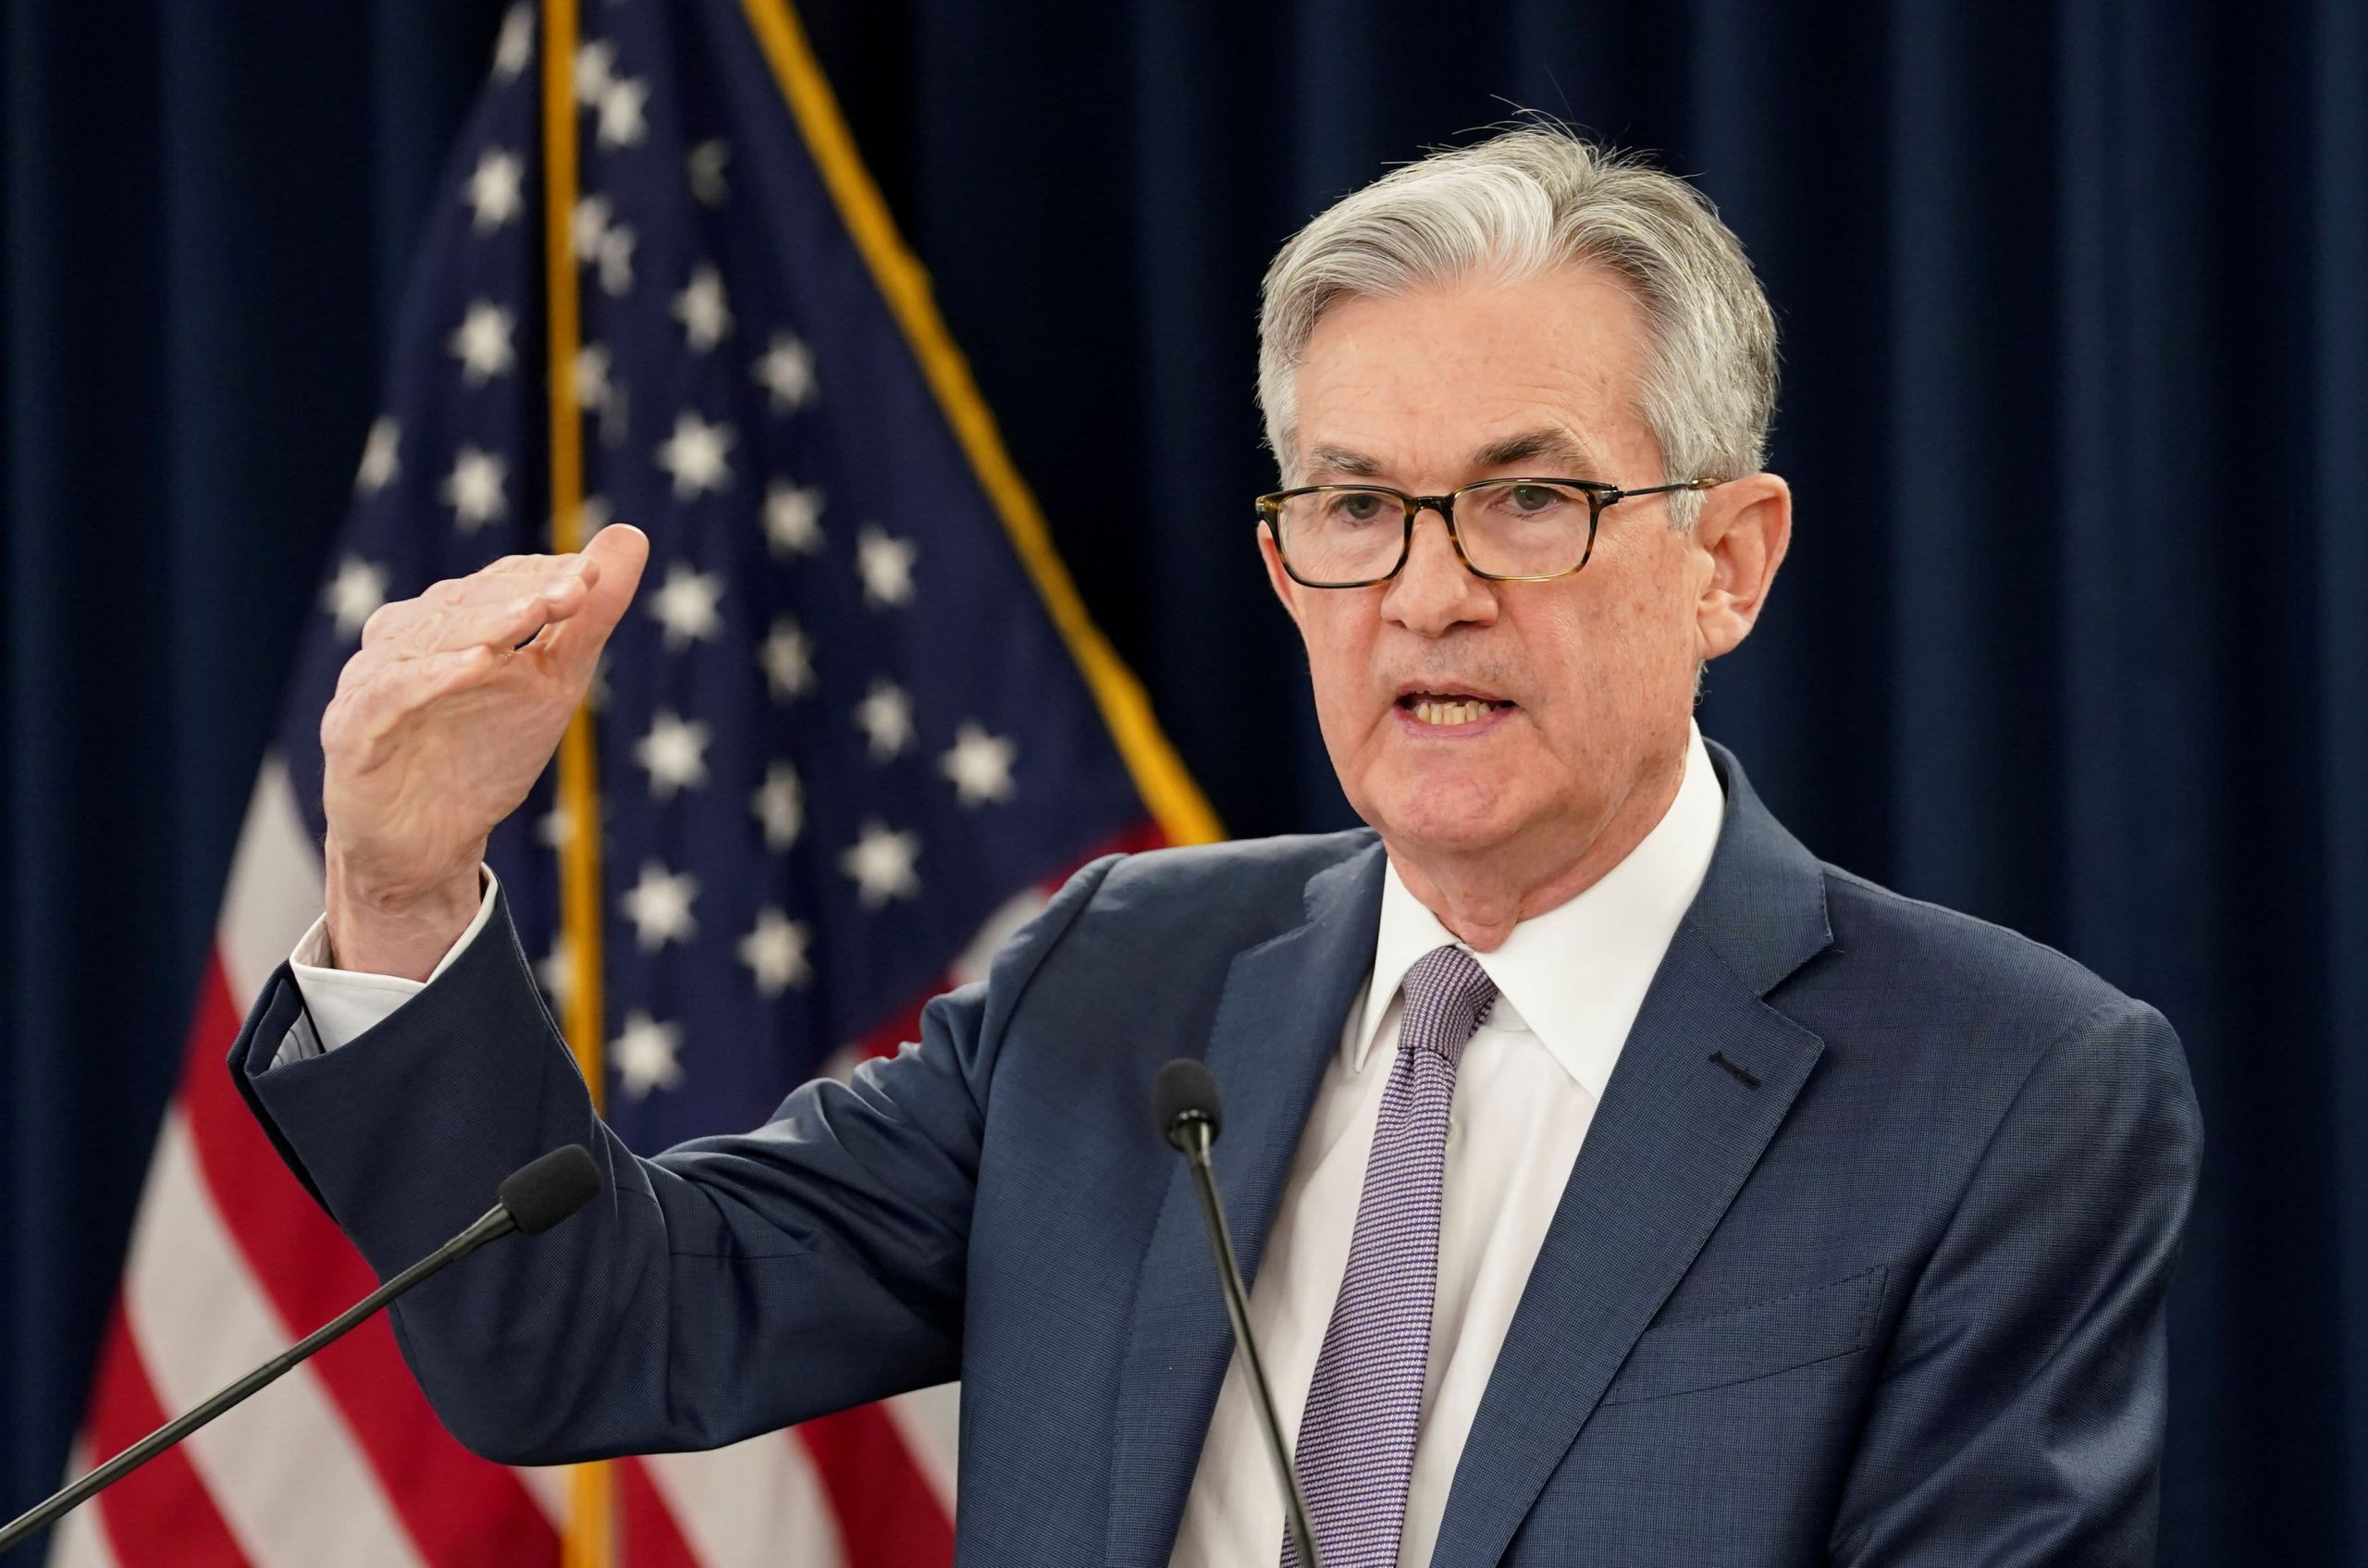 Markets will get plenty of notice before Fed cuts back on bond purchases, minutes show